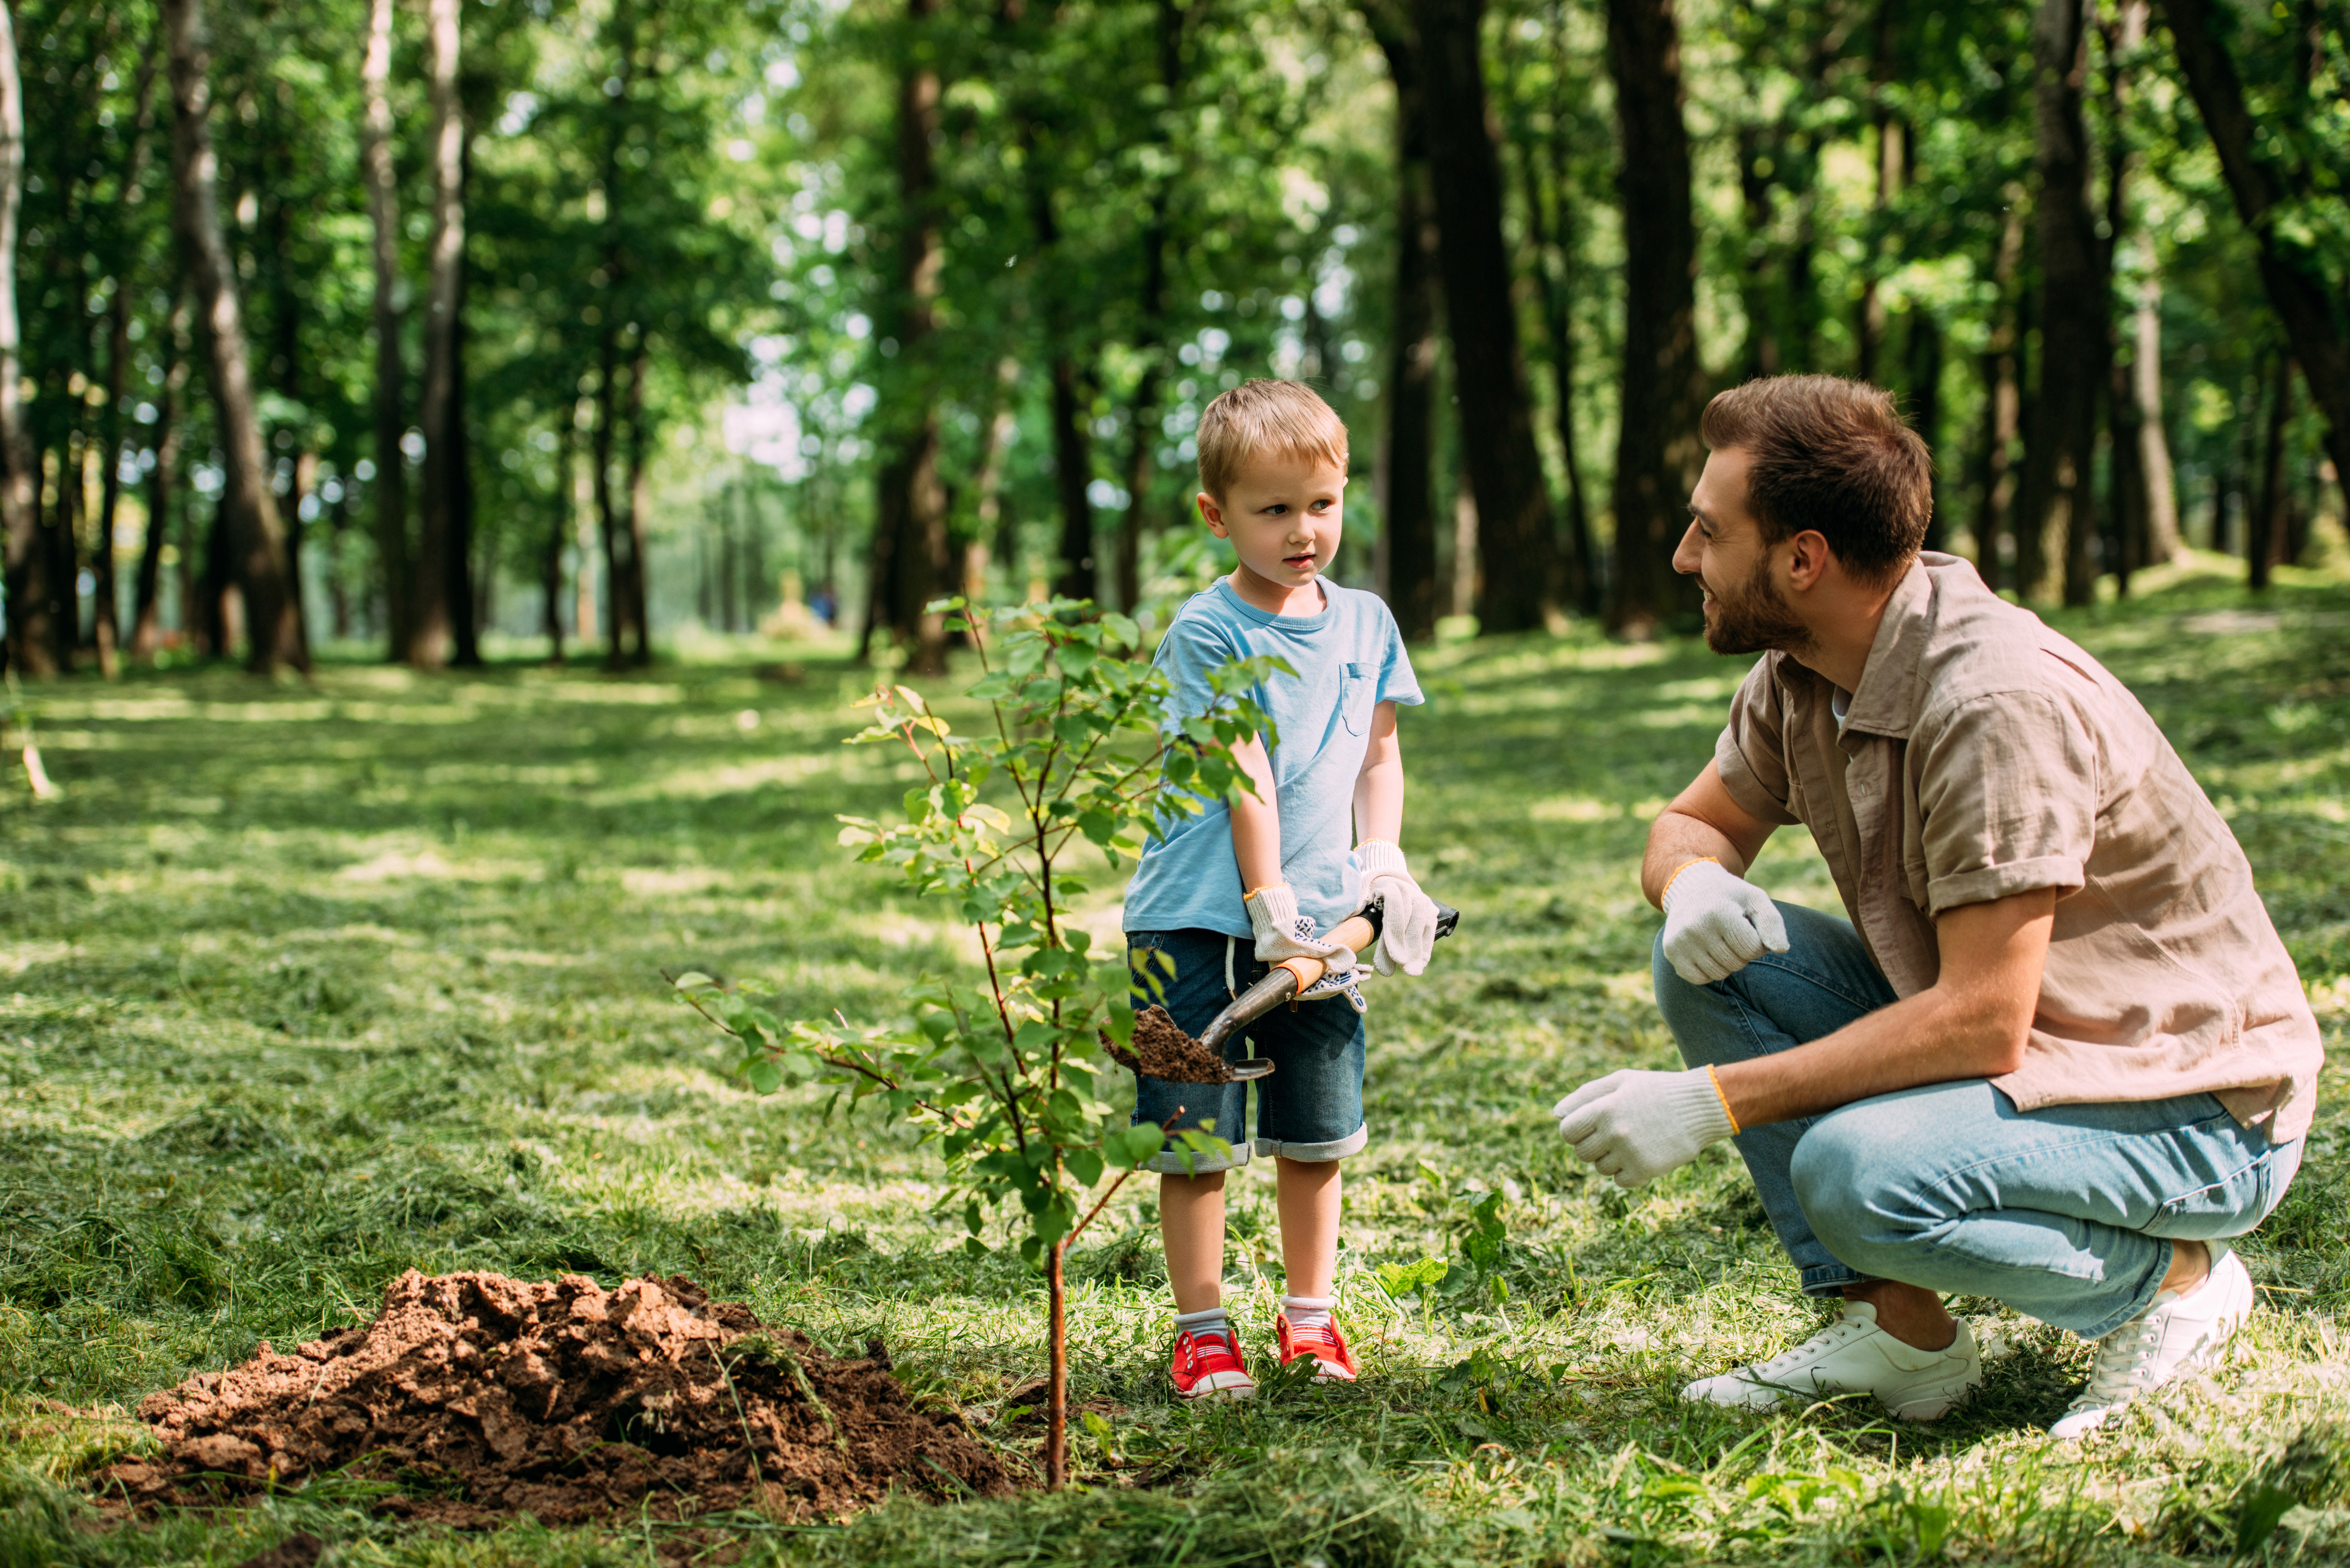 A man and boy planting a tree. The boy is holding a shovel behind a freshly planted tree. A forest is in the background.